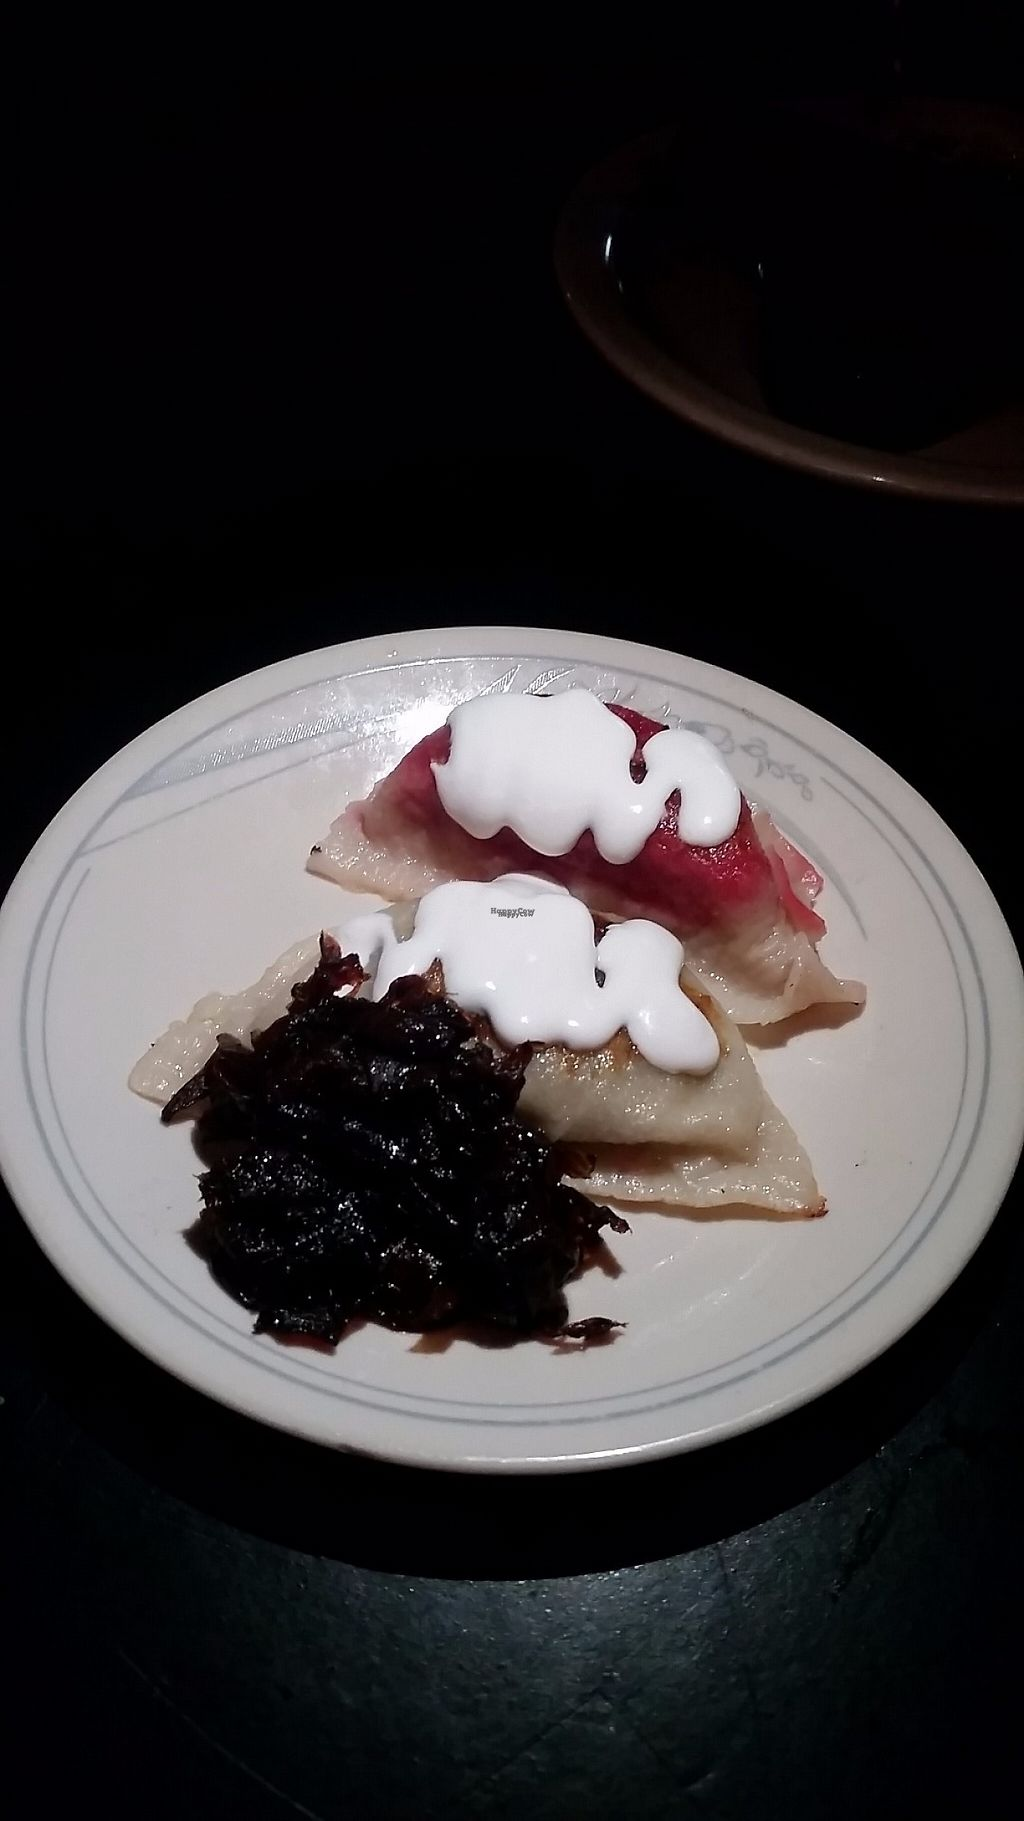 """Photo of Pierogi Mountain  by <a href=""""/members/profile/CorissaMarie"""">CorissaMarie</a> <br/>Perigees!  <br/> February 13, 2017  - <a href='/contact/abuse/image/87122/226325'>Report</a>"""